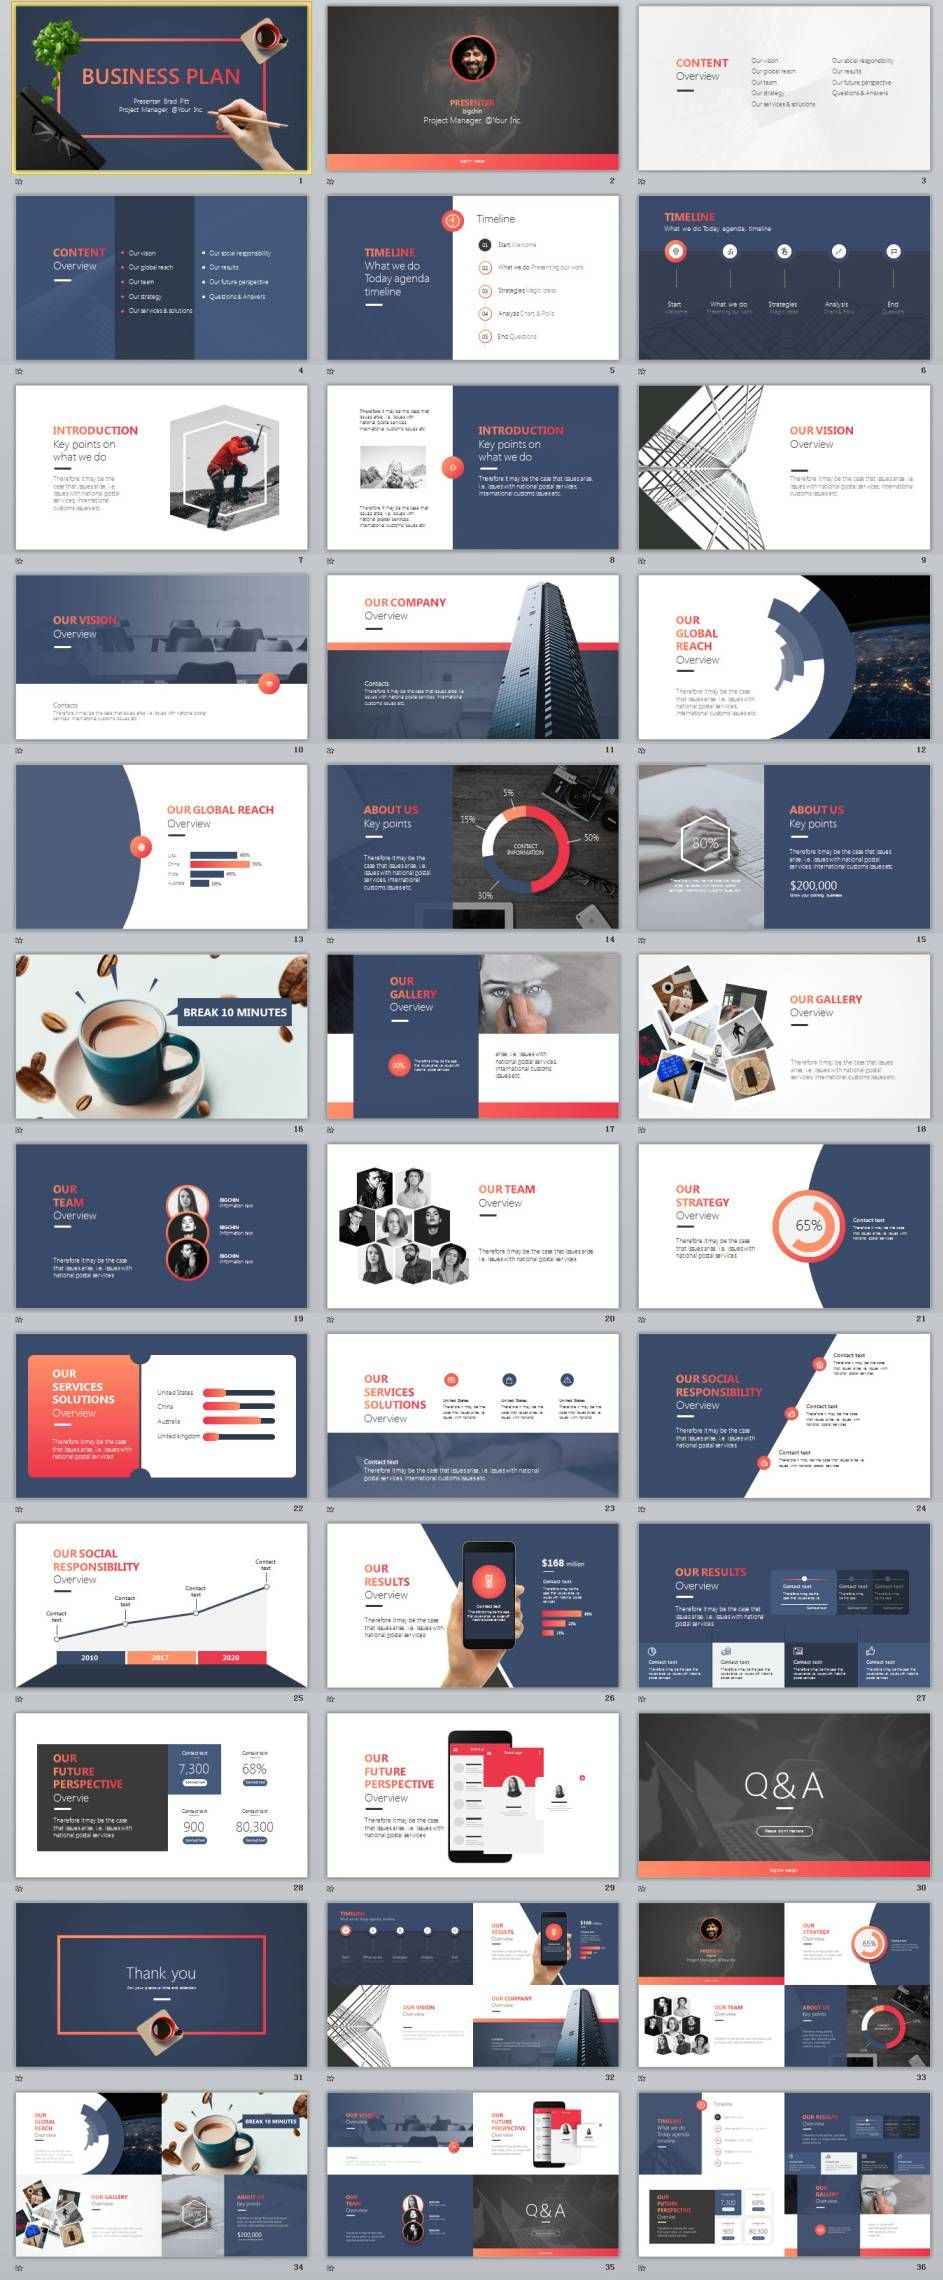 30+ Best tech Business plan PowerPoint template | Pinterest ...